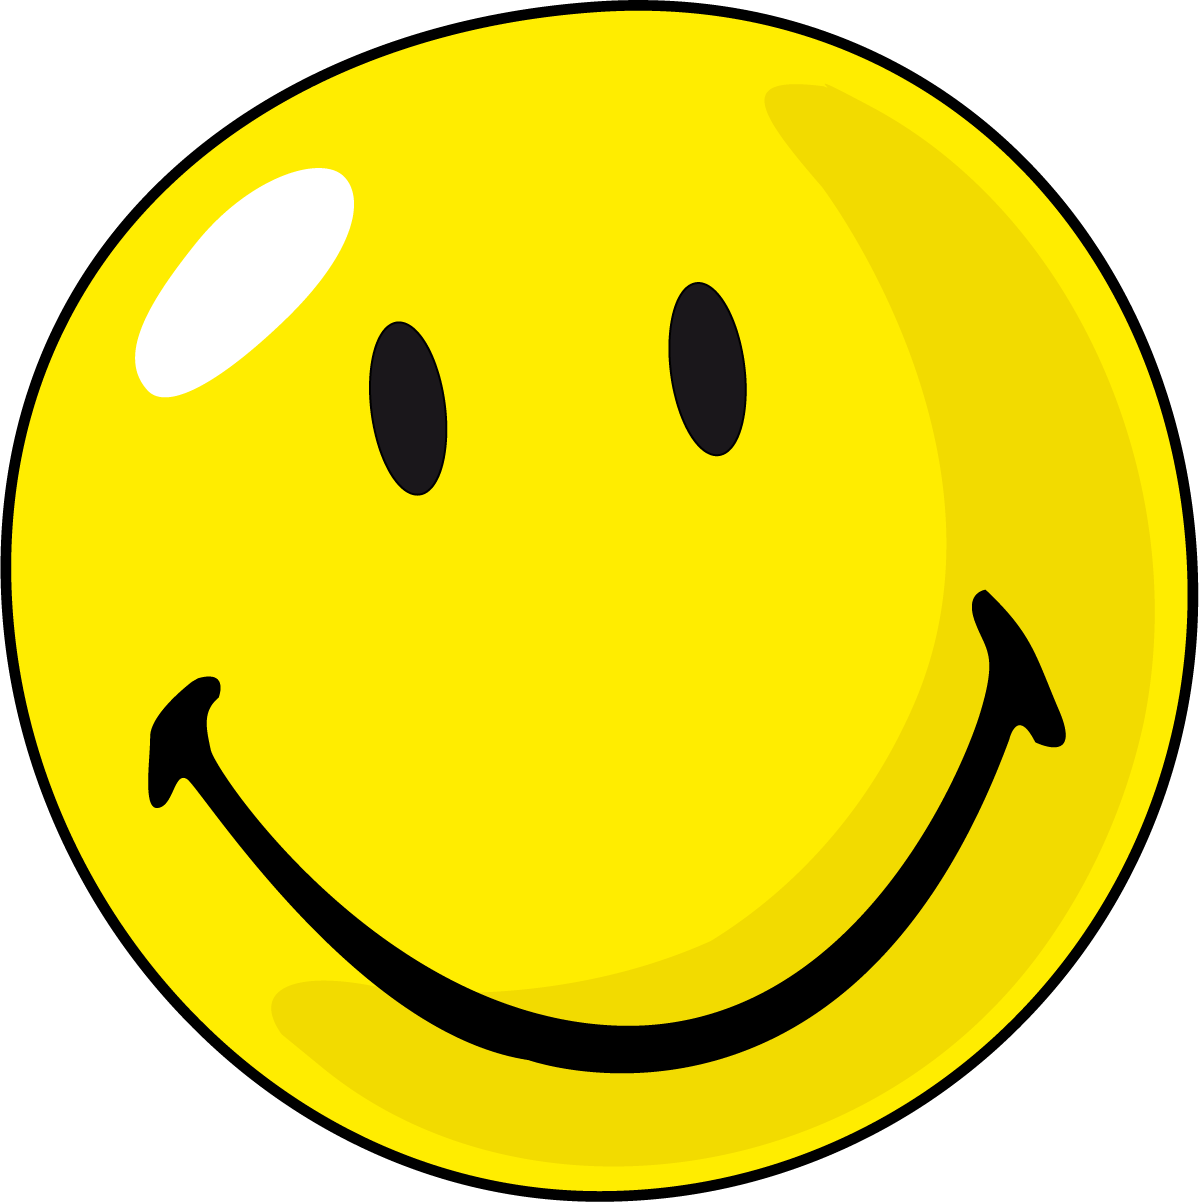 Smiley clipart smile. Face clipartly comclipartly com